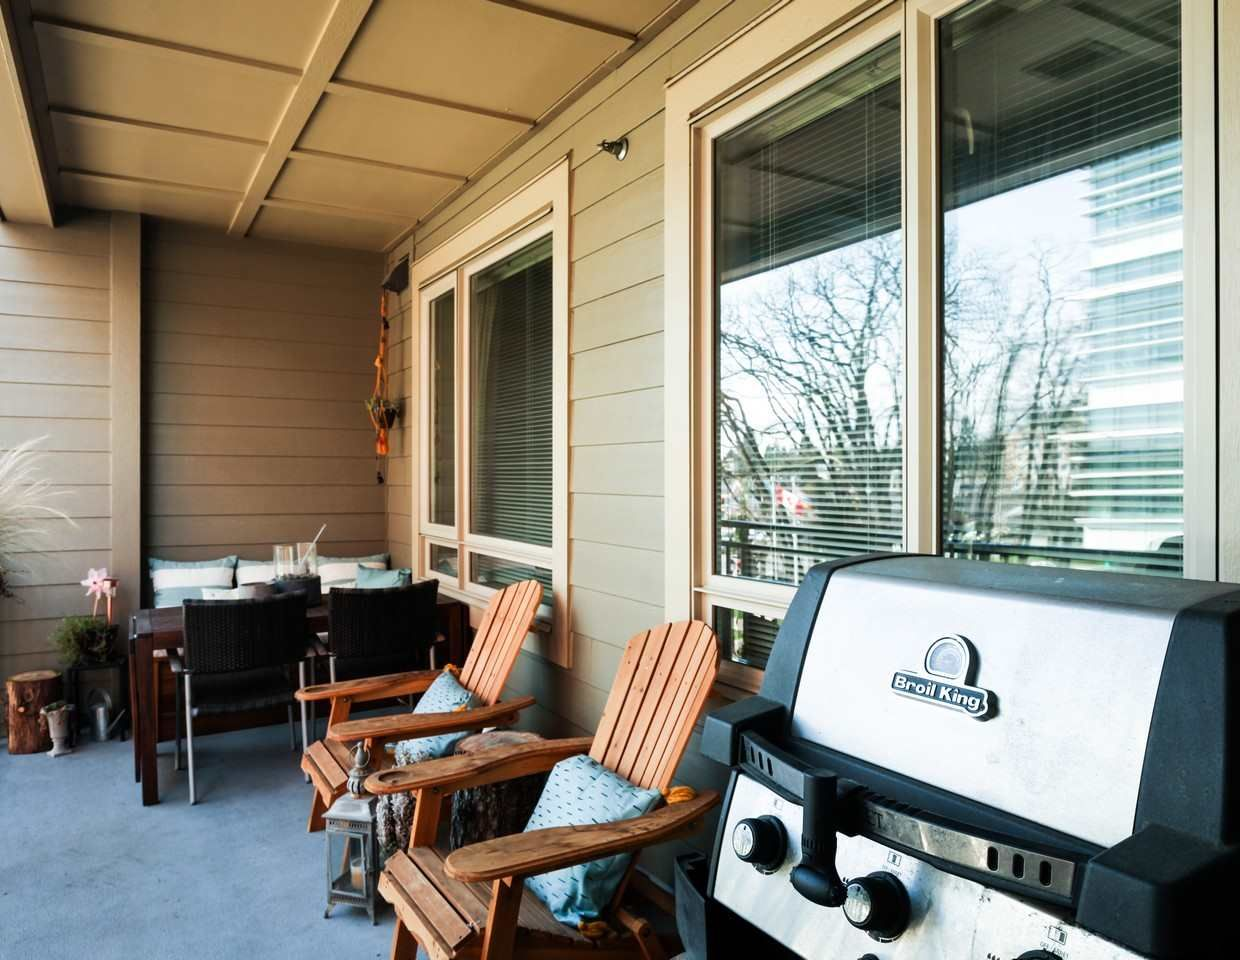 Photo 14: Photos: 319 119 W 22ND STREET in North Vancouver: Central Lonsdale Condo for sale : MLS®# R2047201